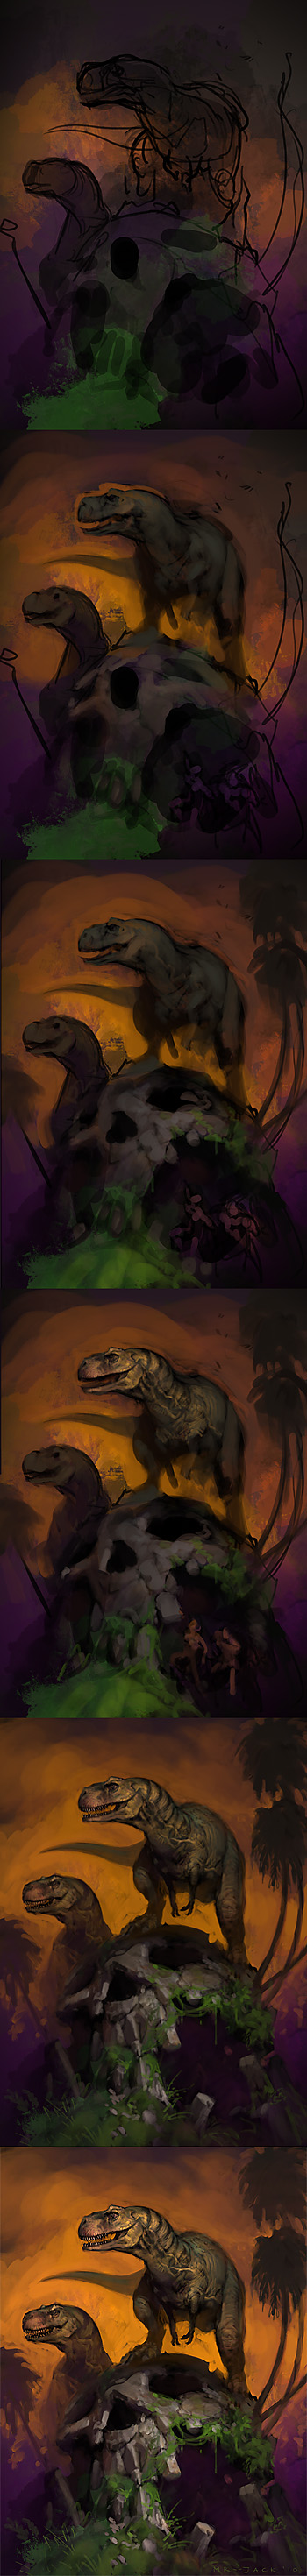 Theropod Dawn Process by Mr--Jack